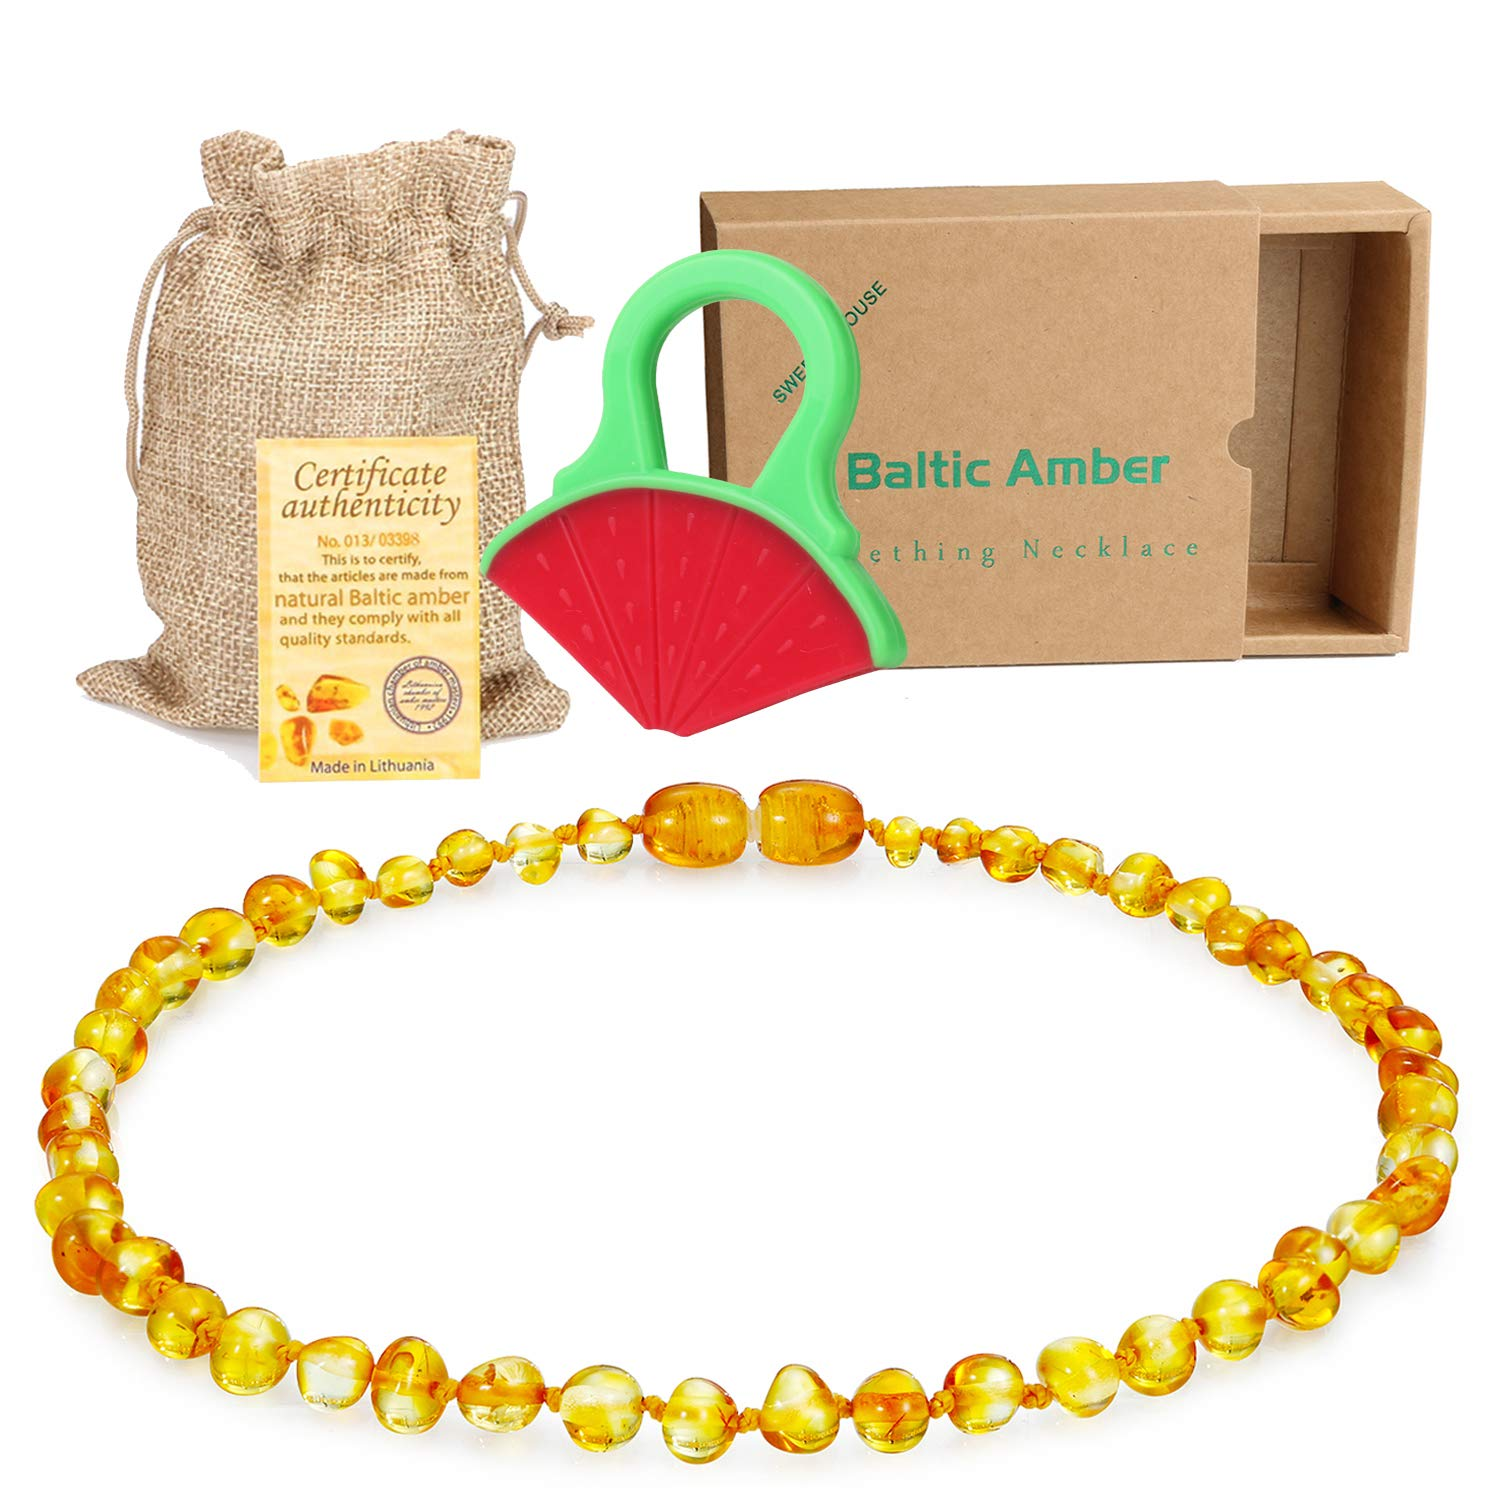 Raw Baltic Baby Amber Teething Necklace - (Cognac) Anti-Flammatory, Drooling & Free Teething Toy Pain Reduce - Reduces Tension and Fear, Teething Necklace for 3 to 36 Months Babies,Boys and Girls Dannielbaby